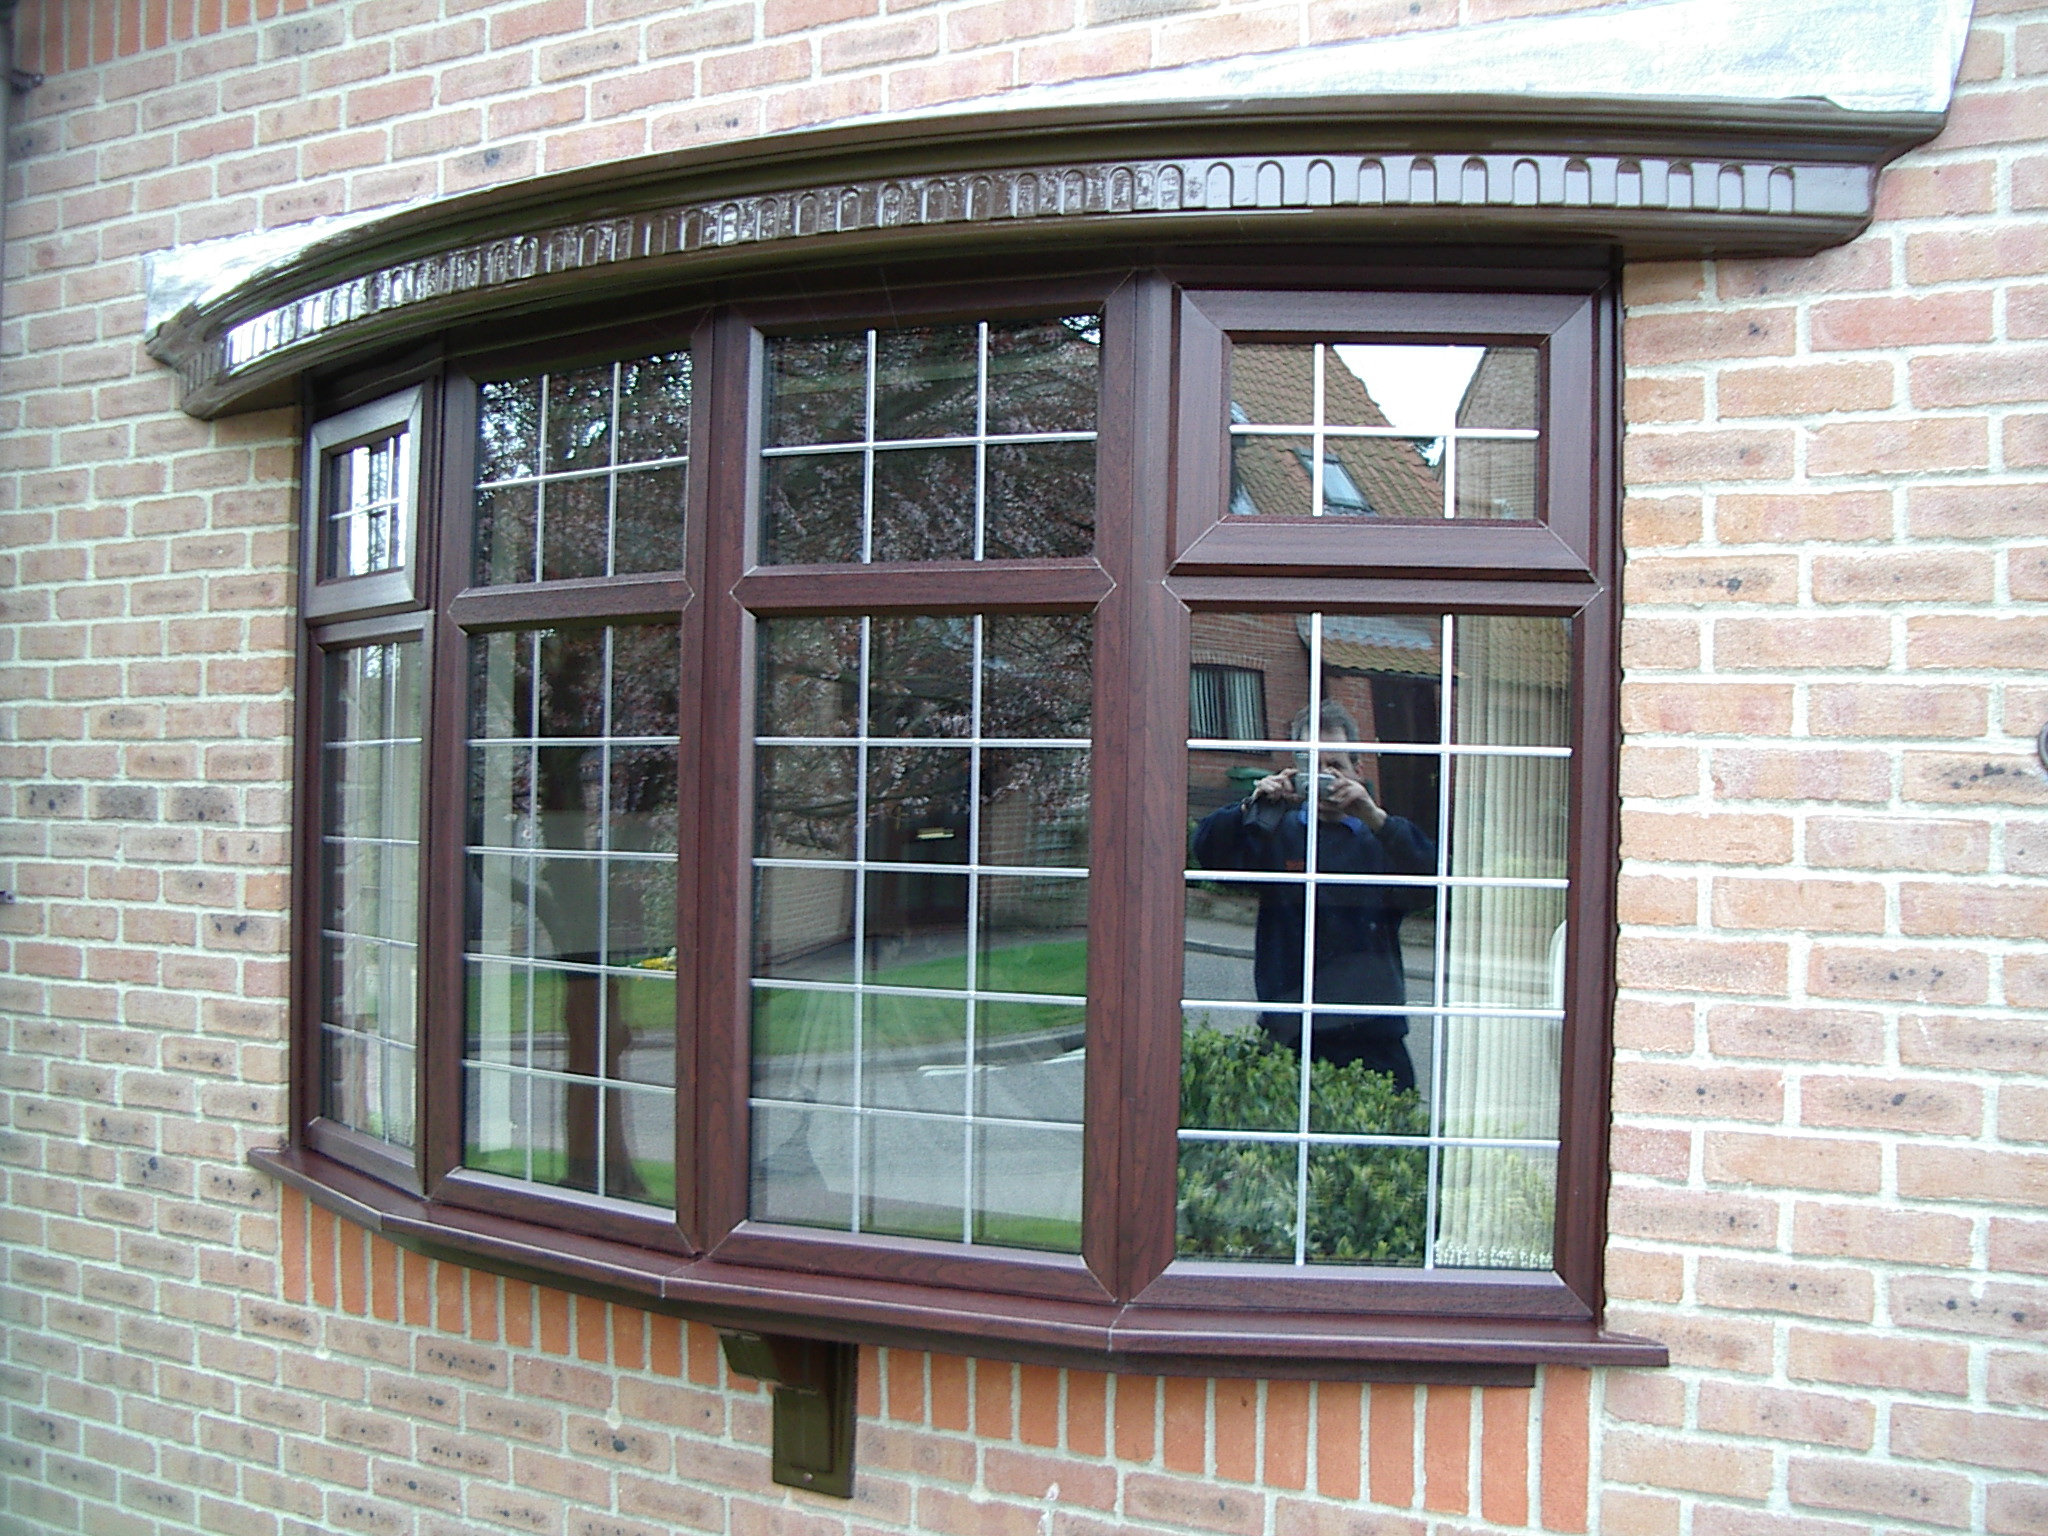 Window design home window designs home windows design for Home window design pictures